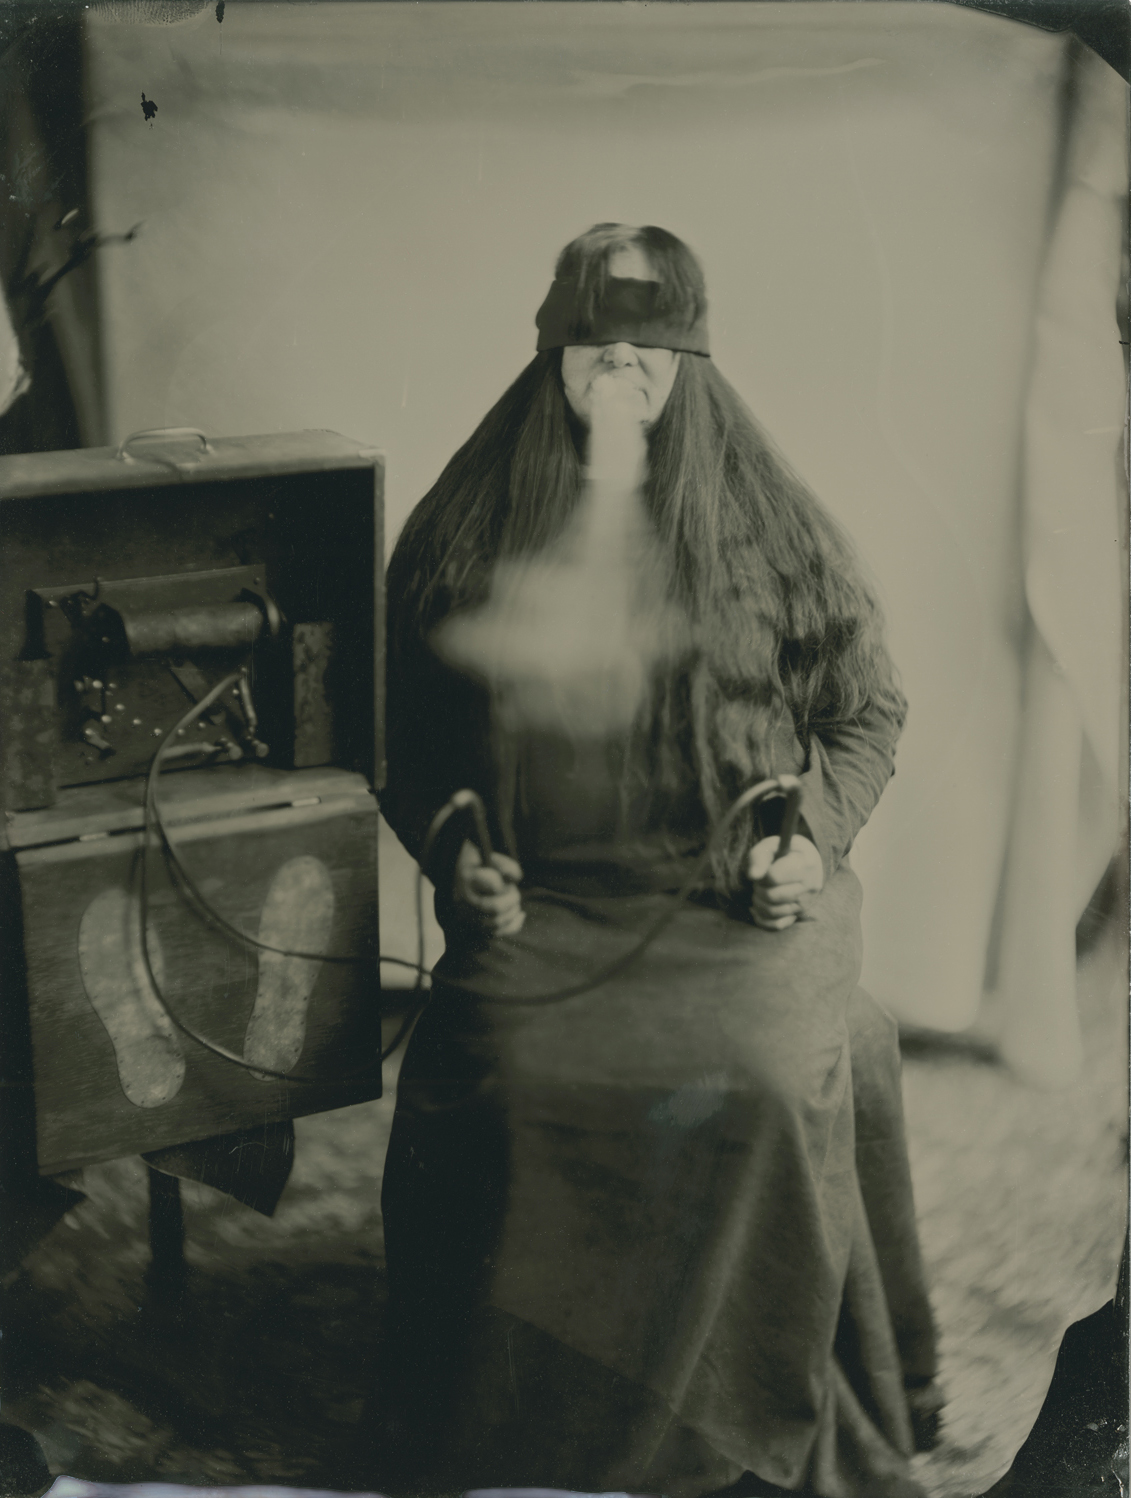 Spirit Photography Tintype by Vermont photographer Nakki Goranin